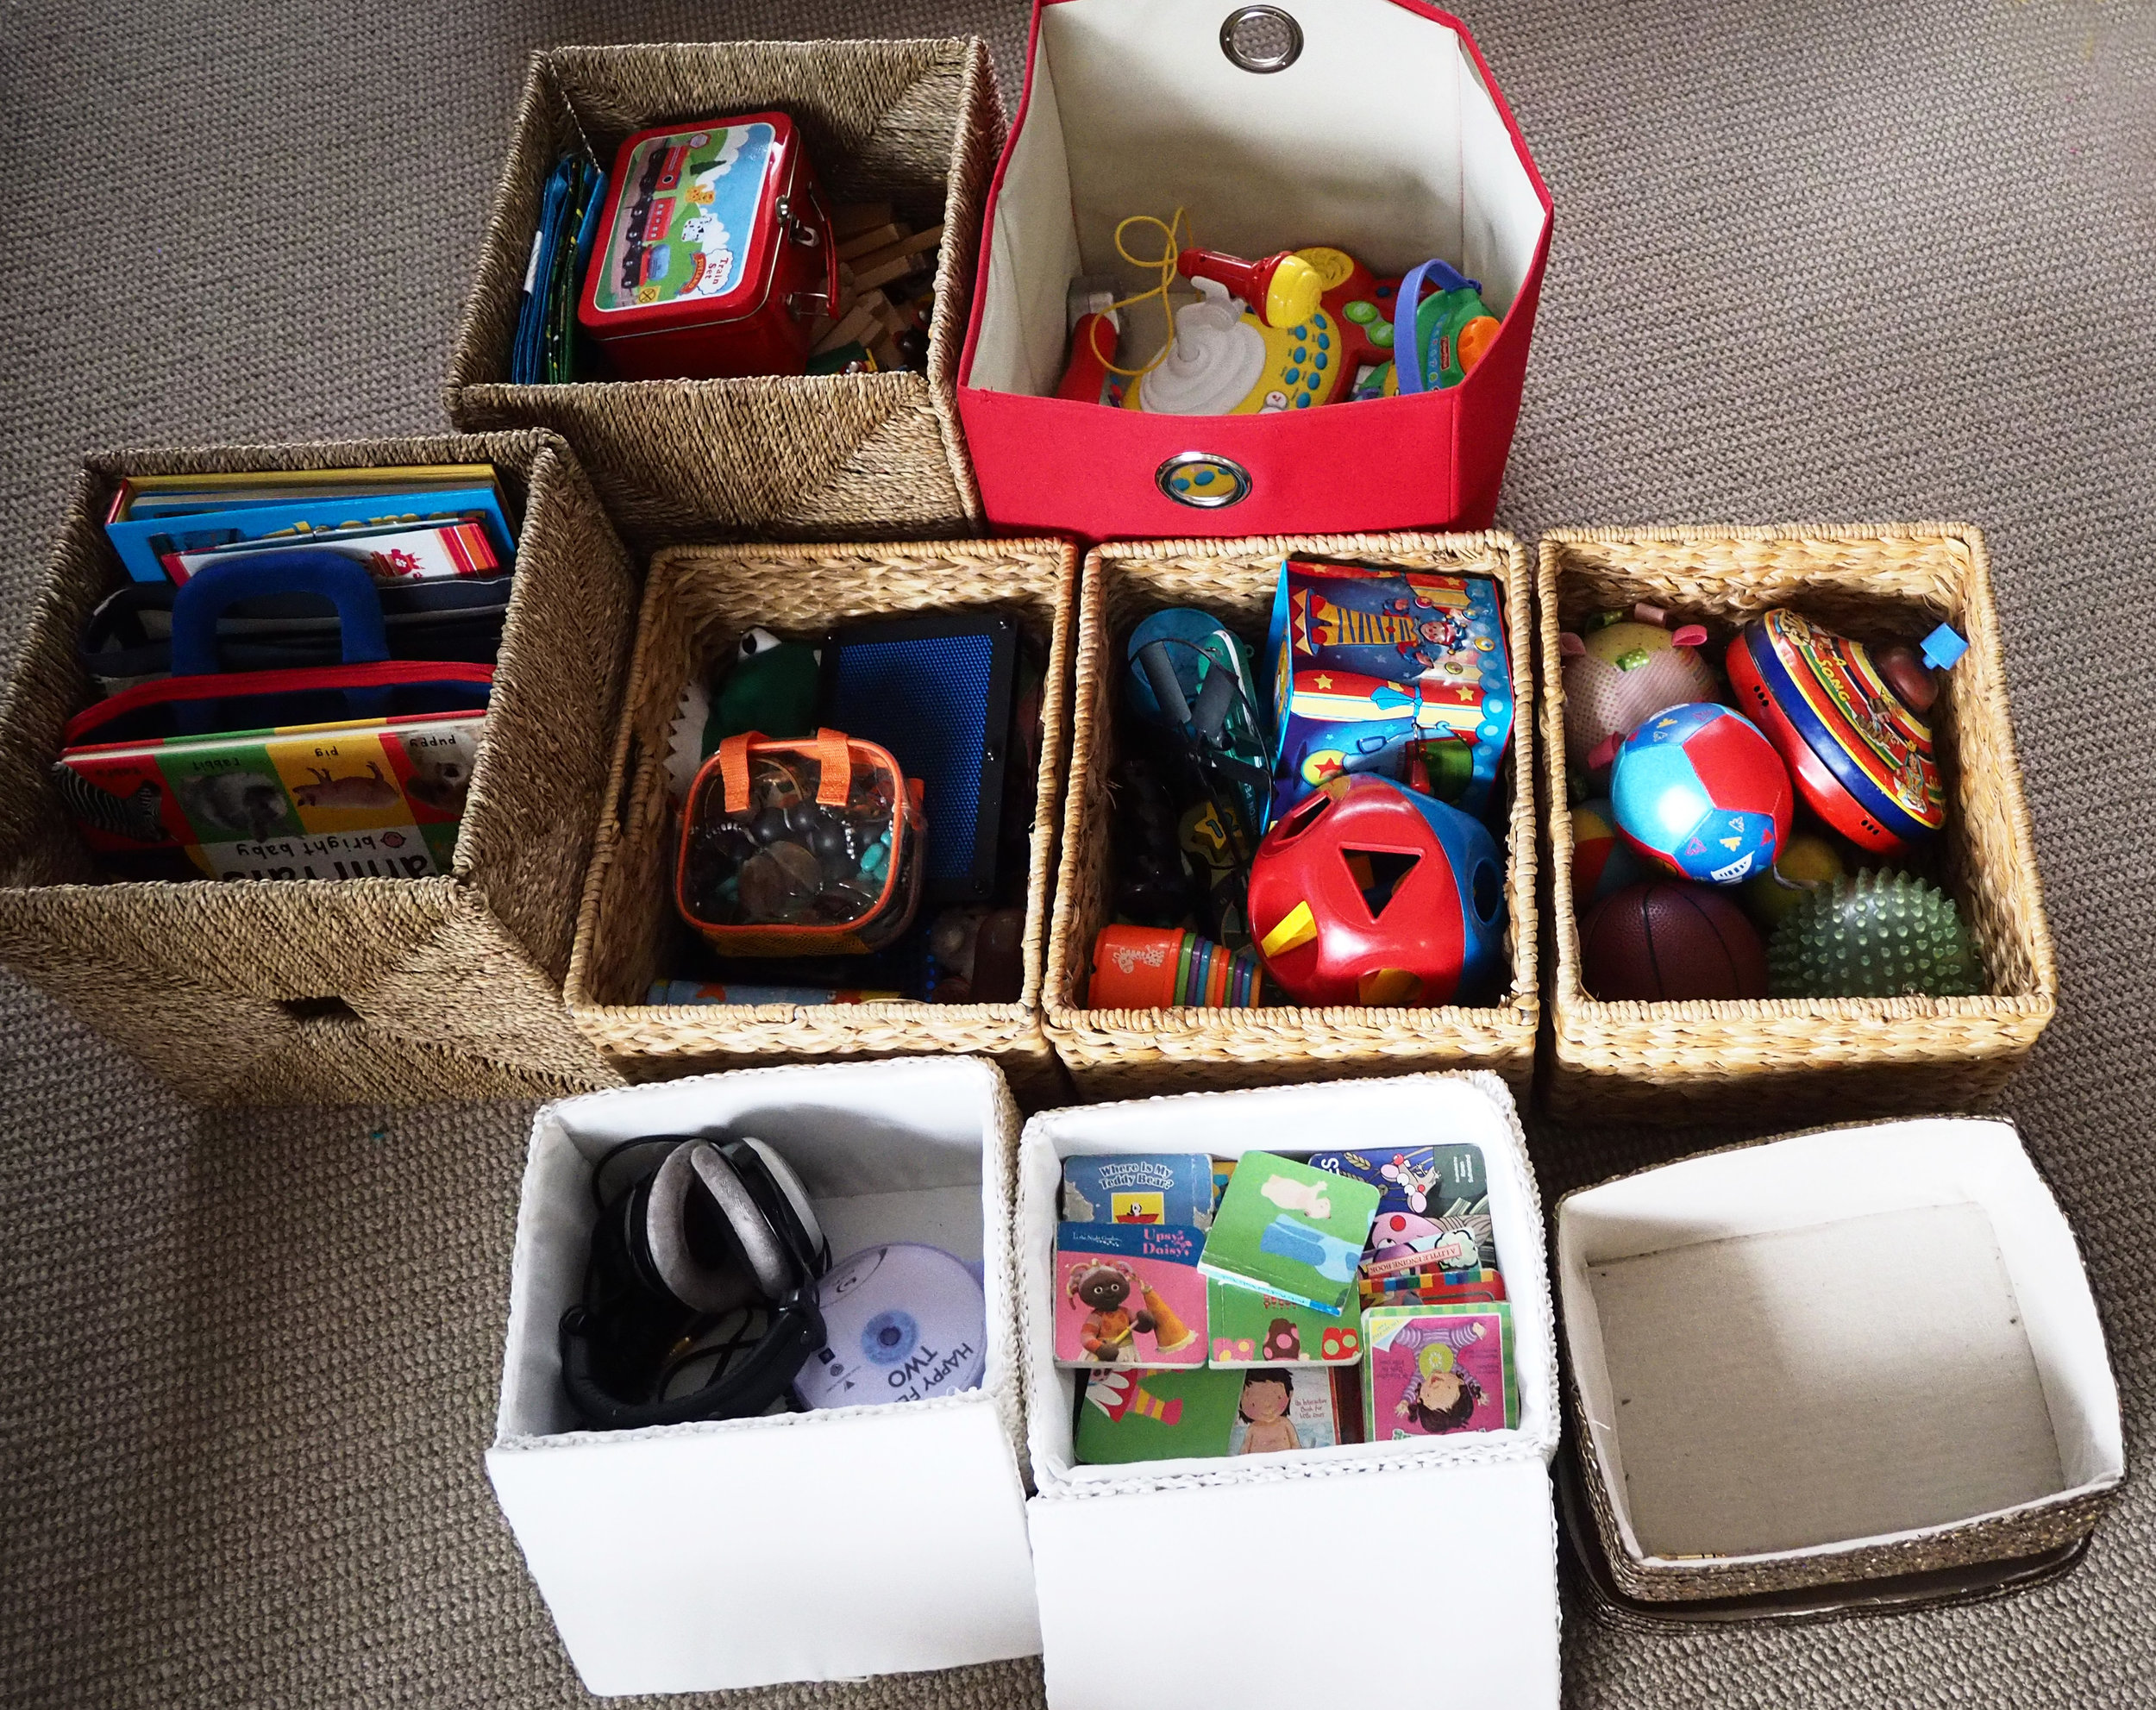 Declutter the kids' toys before Christmas to prepare for the influx of new toys